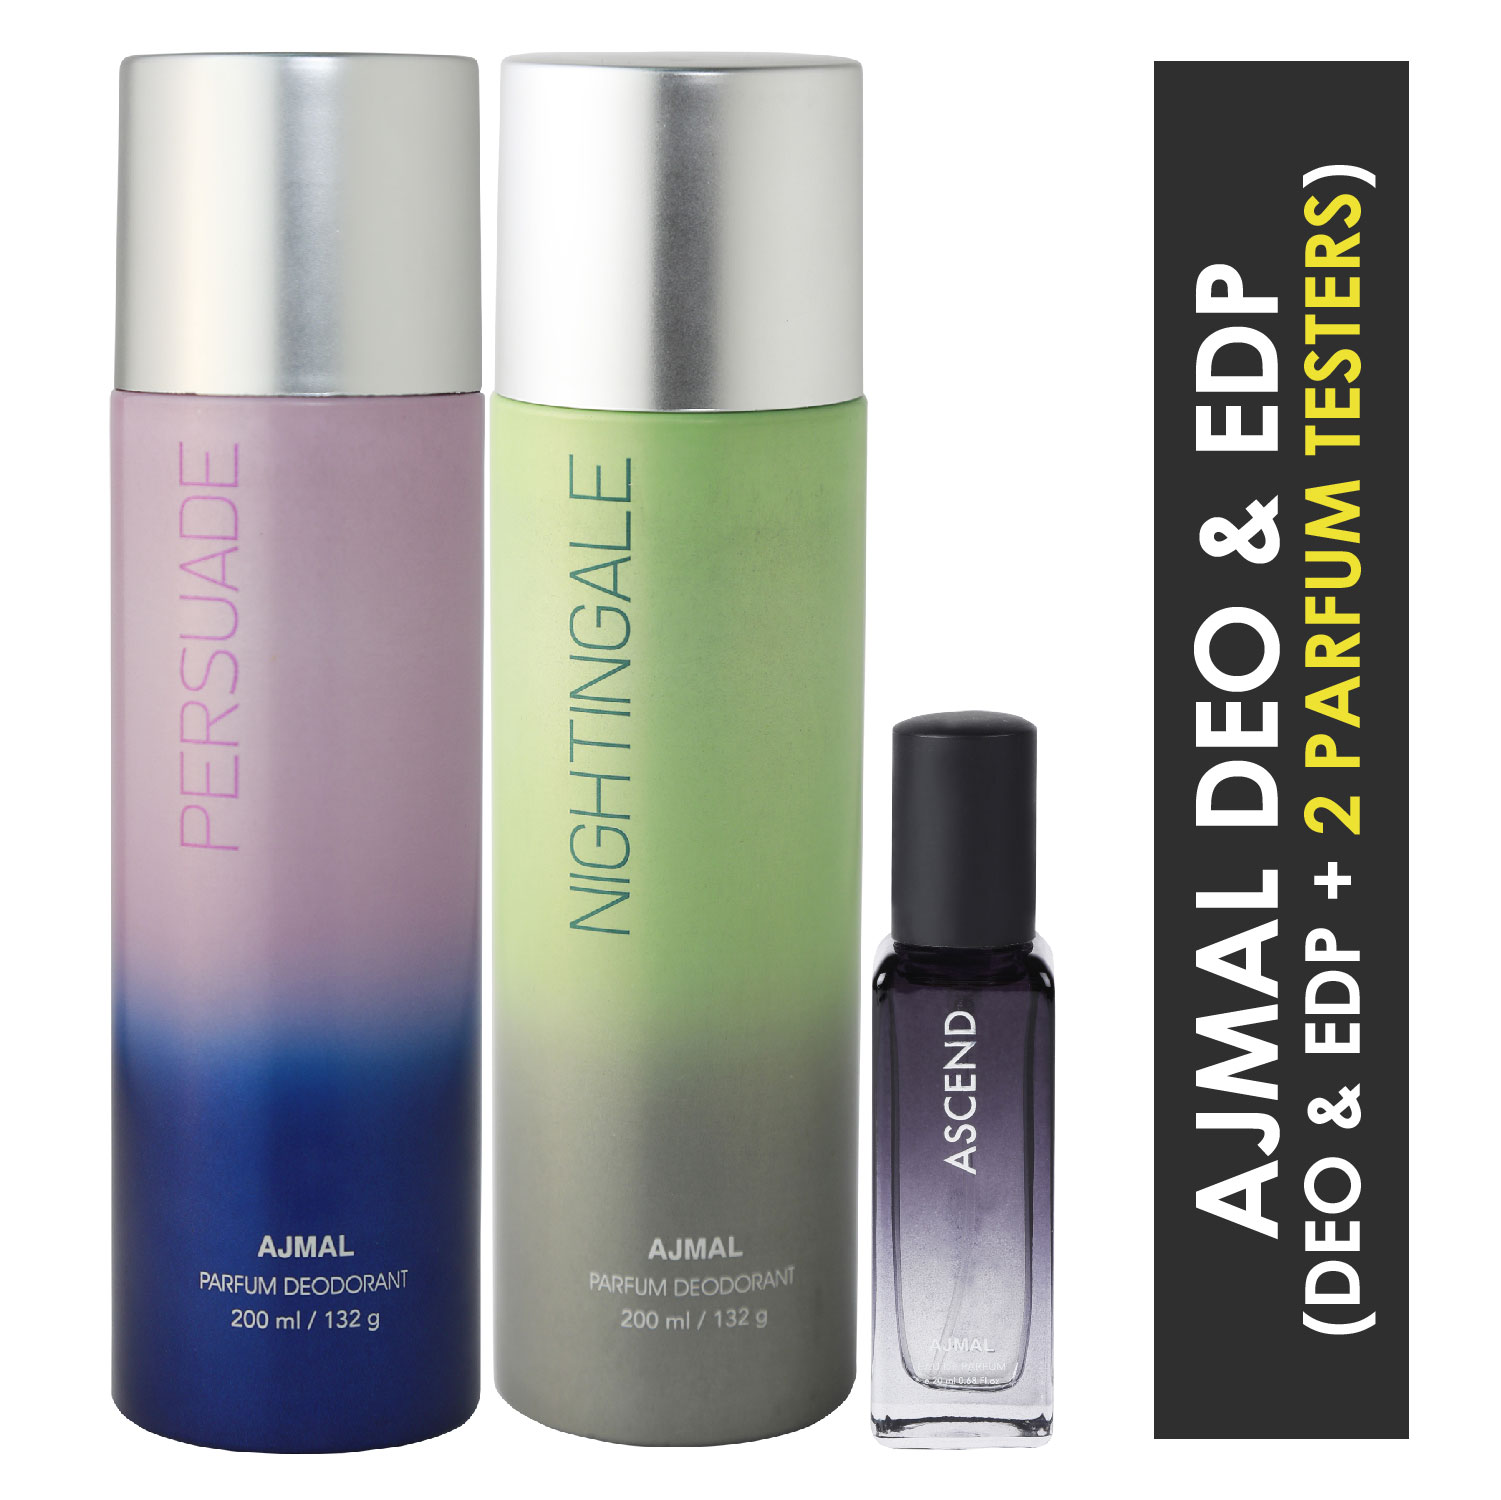 Ajmal | Ajmal Persuade & Distraction Deo each 200ml & Ascend  EDP 20MLPack of 3 (Total 420ML) for Men & Women + 2 Parfum Testers